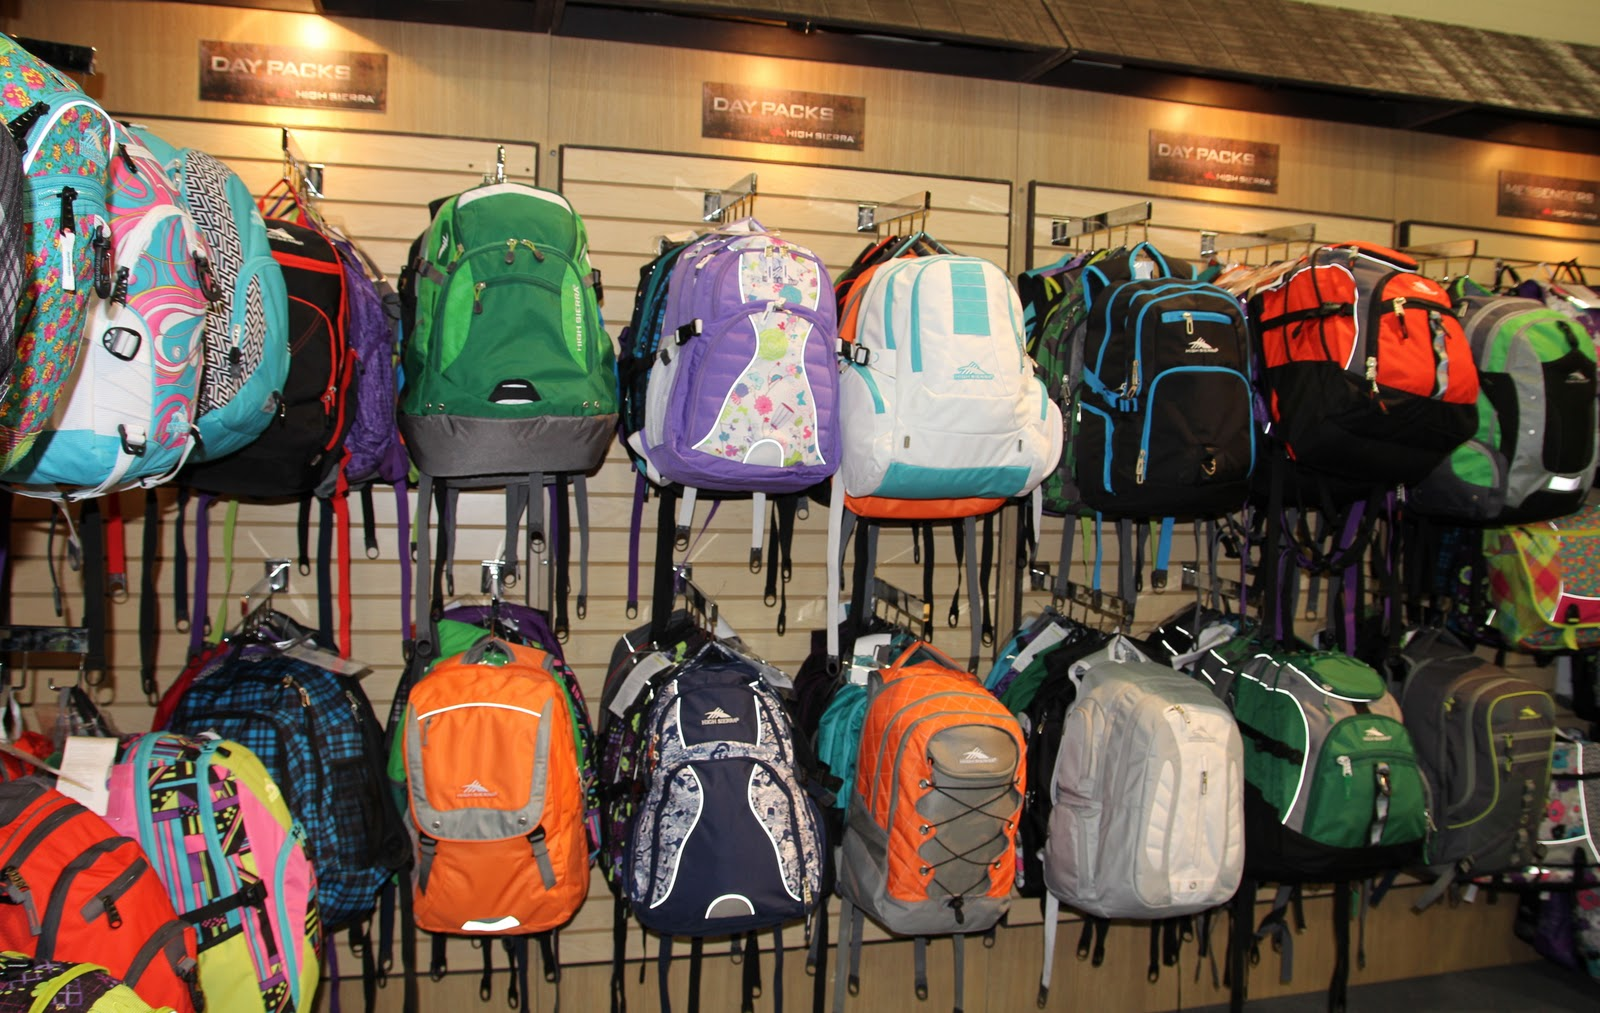 LYRA MAG.: HIGH SIERRA BACKPACKS, MESSENGER BAGS, LUGGAGE SPRING 2012